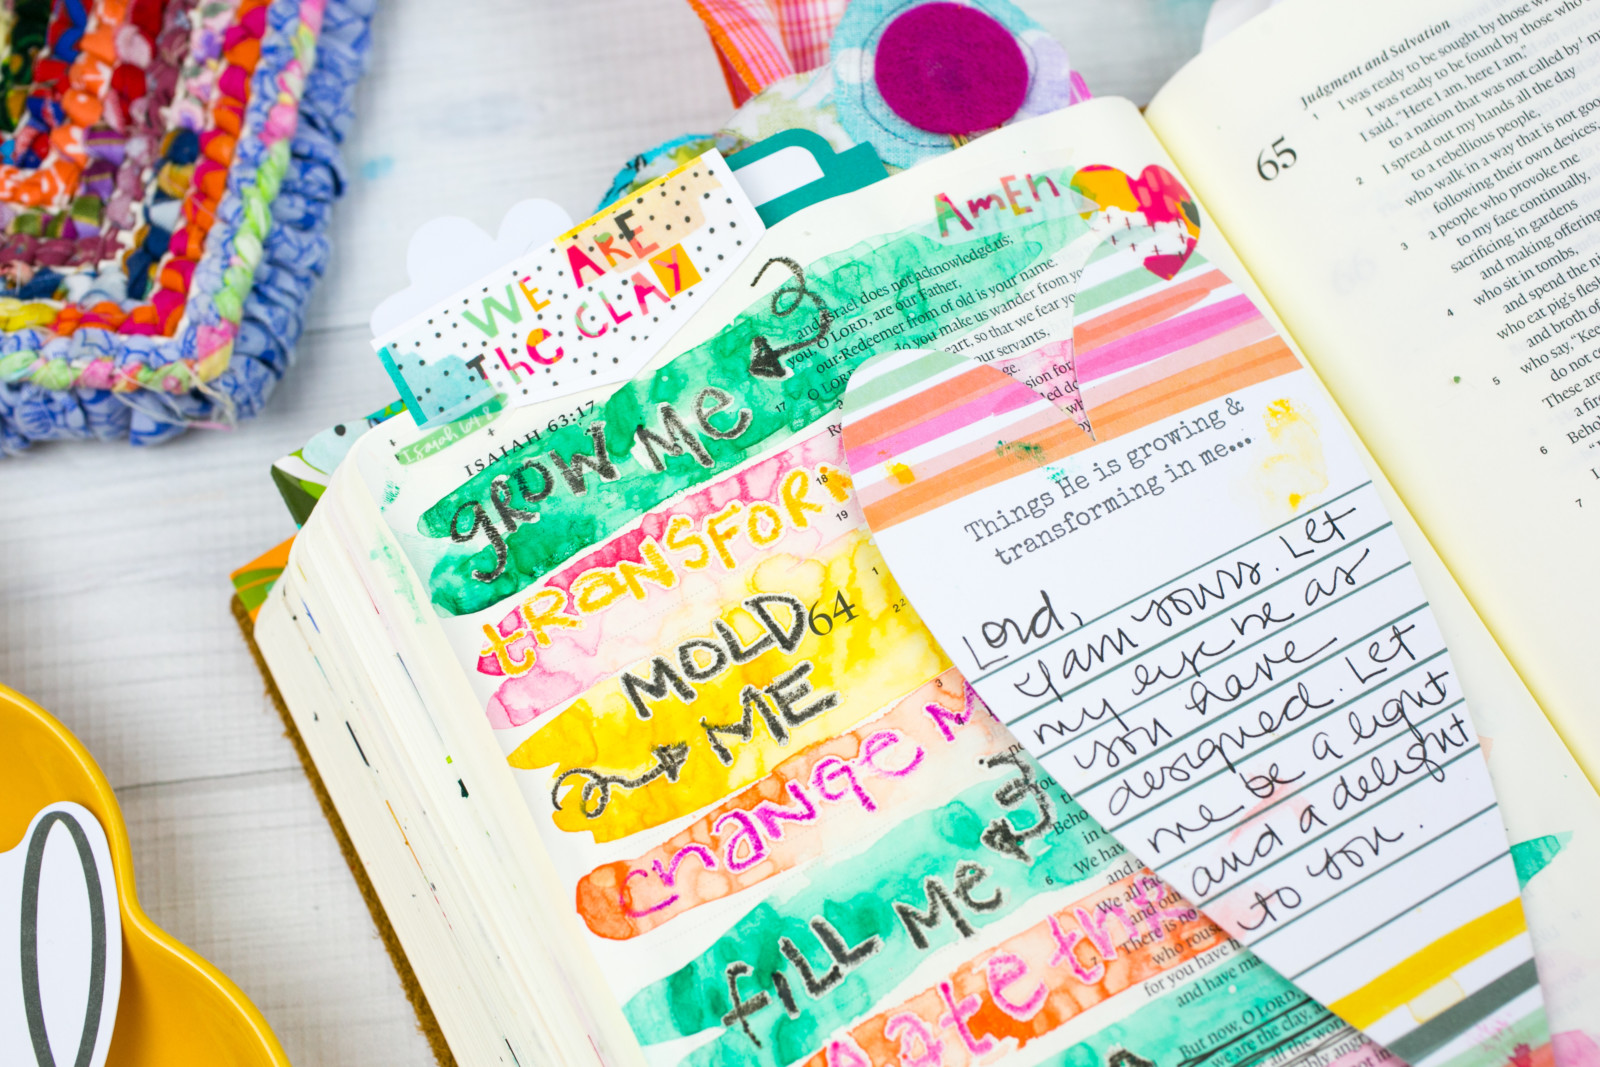 mixed media watercolor Bible journaling tutorial by Amy Bruce | Watercolor Tutorial | Resist Technique - We are the Clay